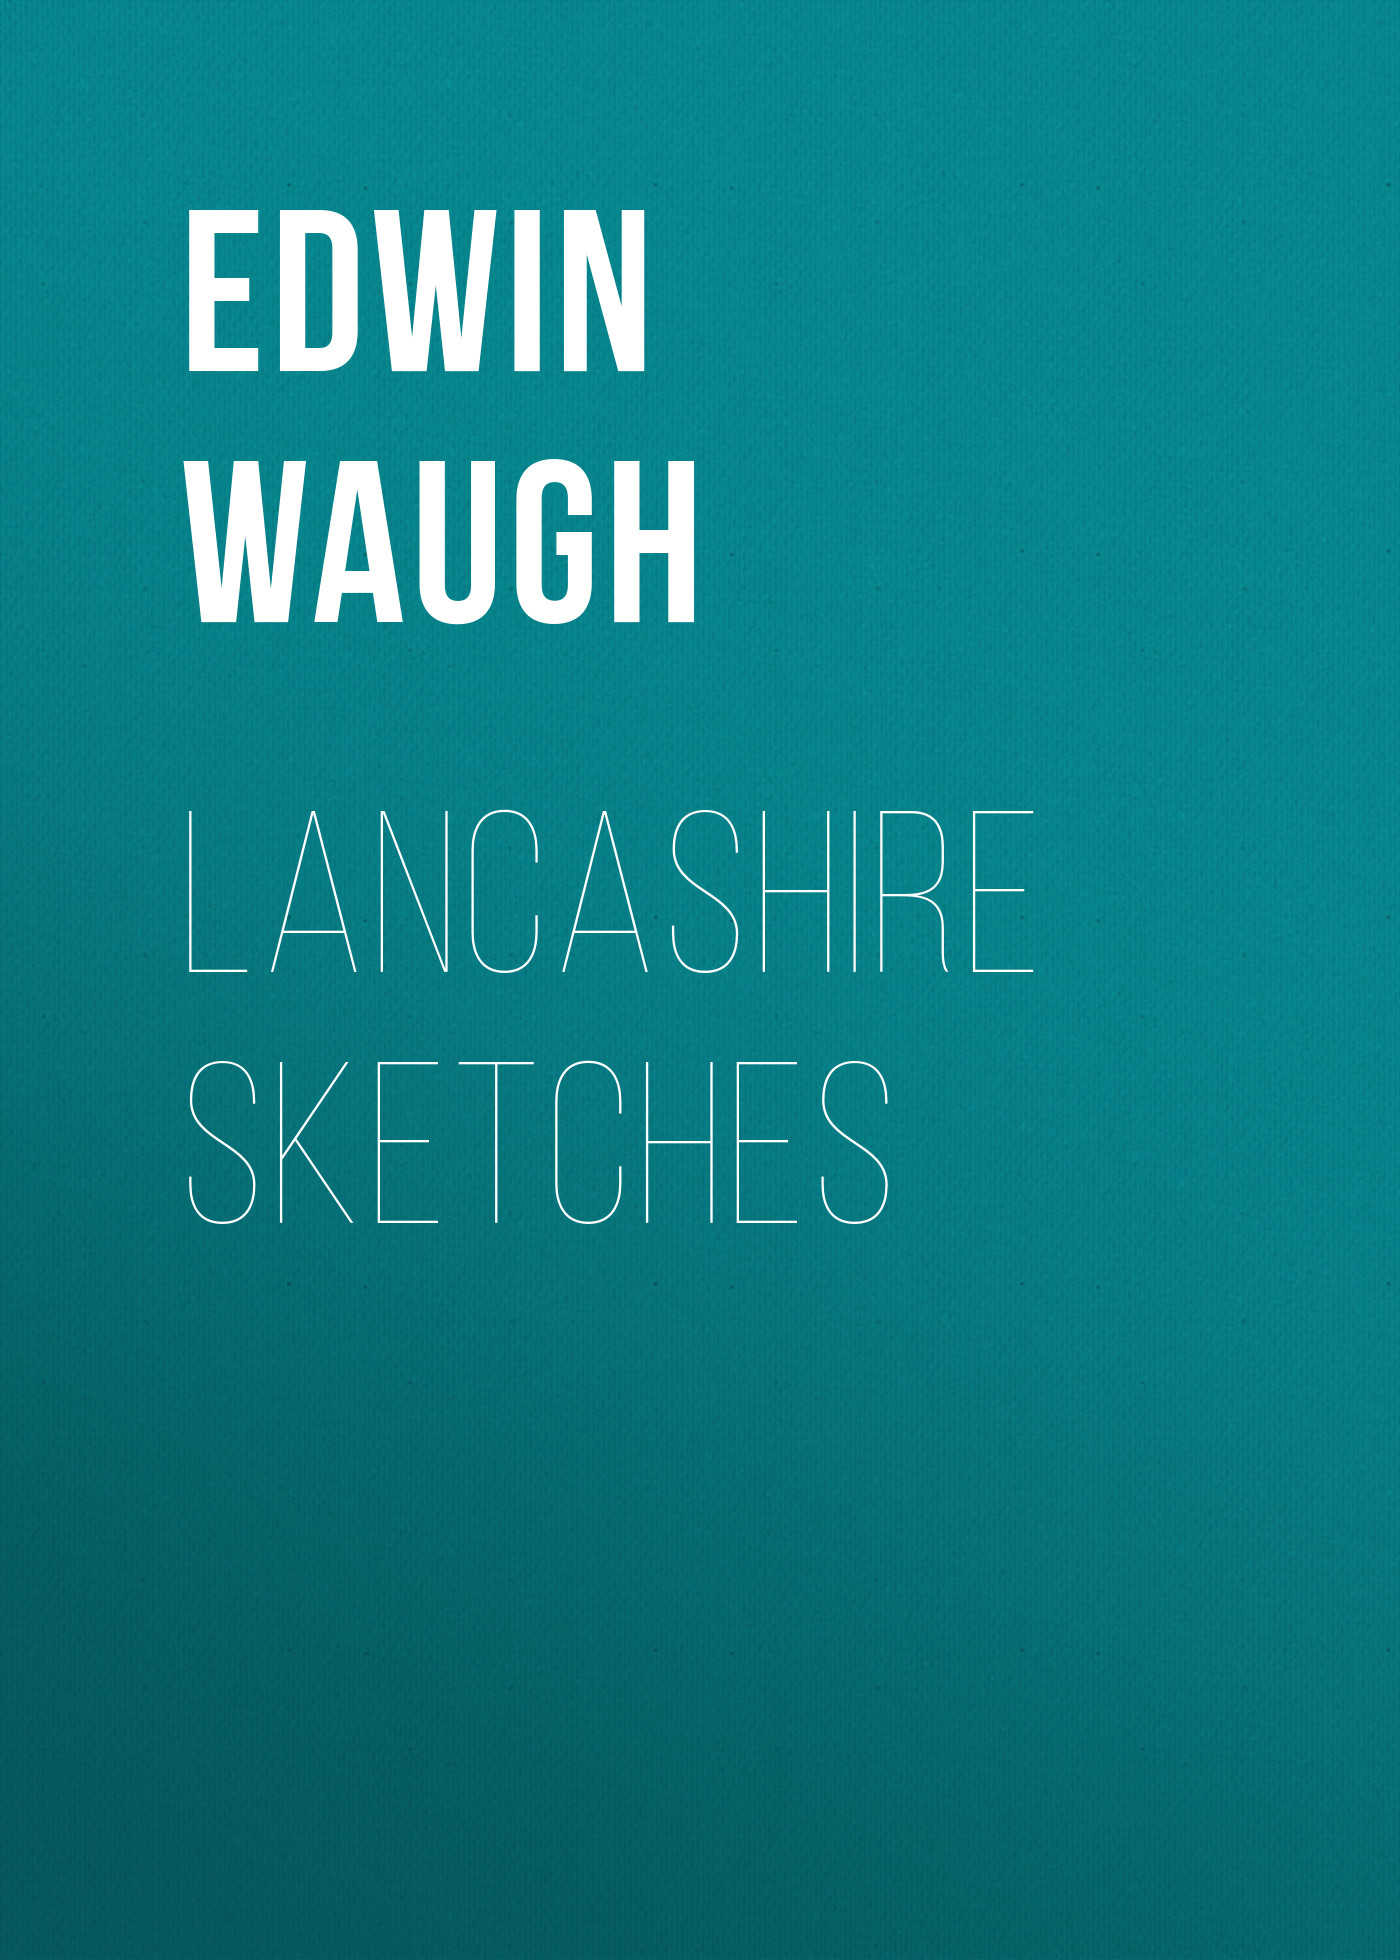 Edwin Waugh Lancashire Sketches joseph laing waugh betty grier